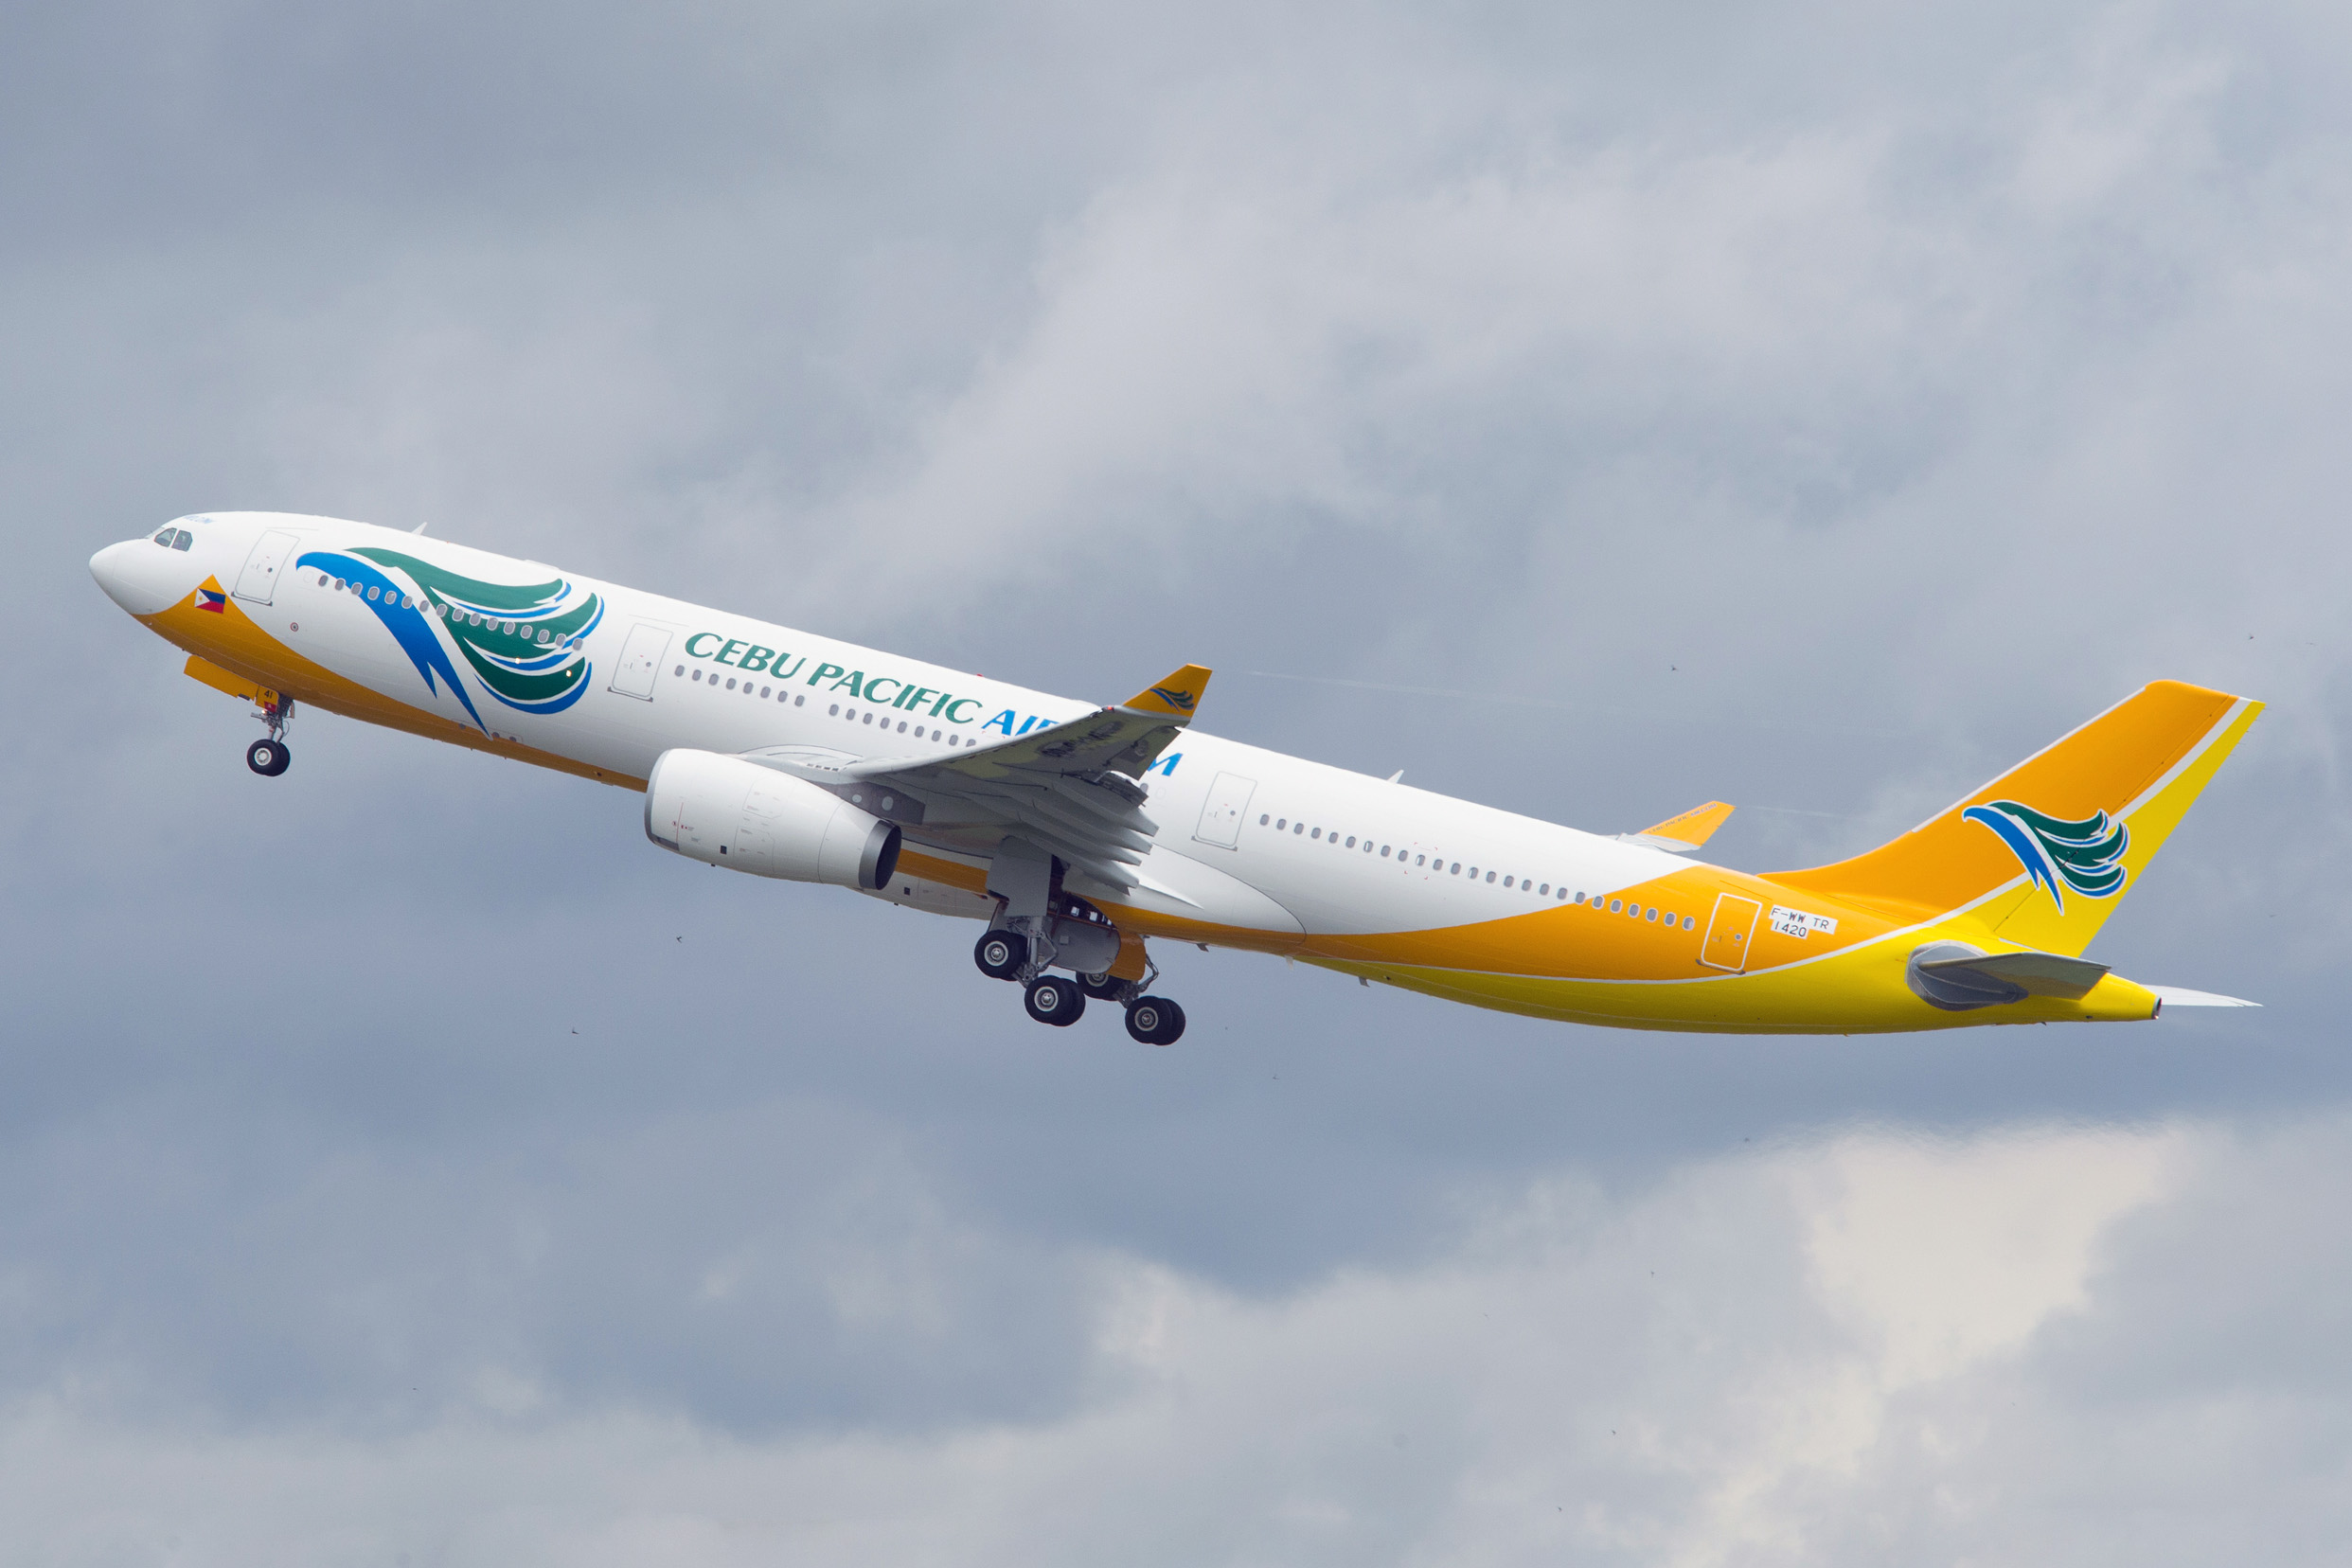 Cebu Pacific recibe su primer A330-300